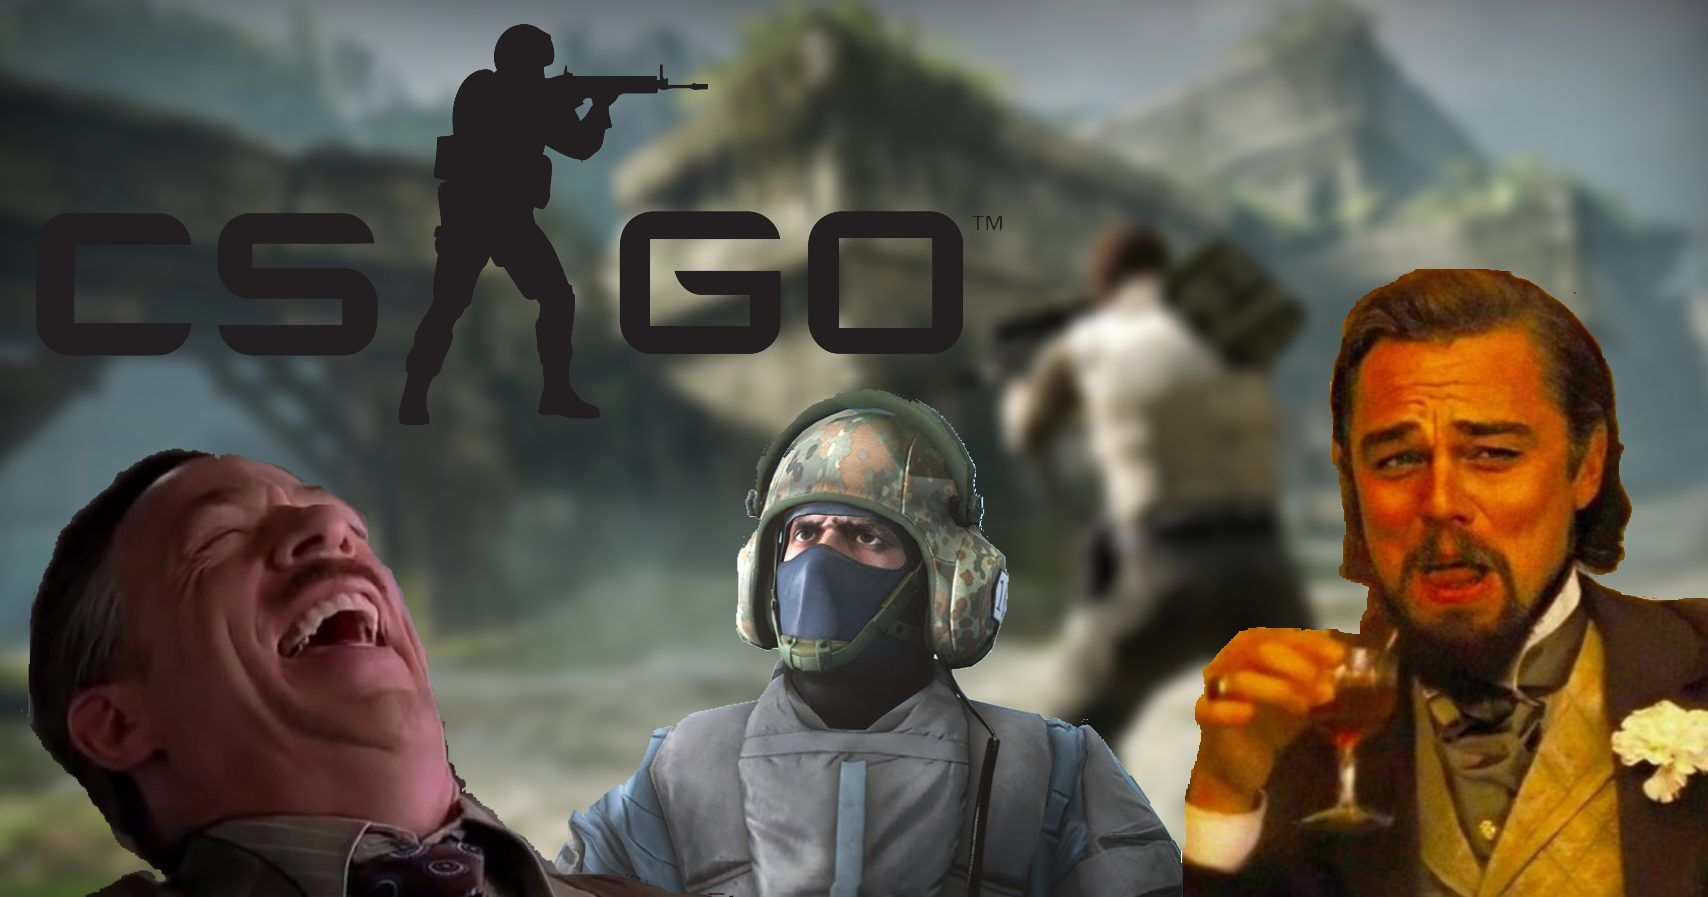 Fake CS:GO Cheat Software Punishes Cheaters With Mind Control, Fake Shots, And More